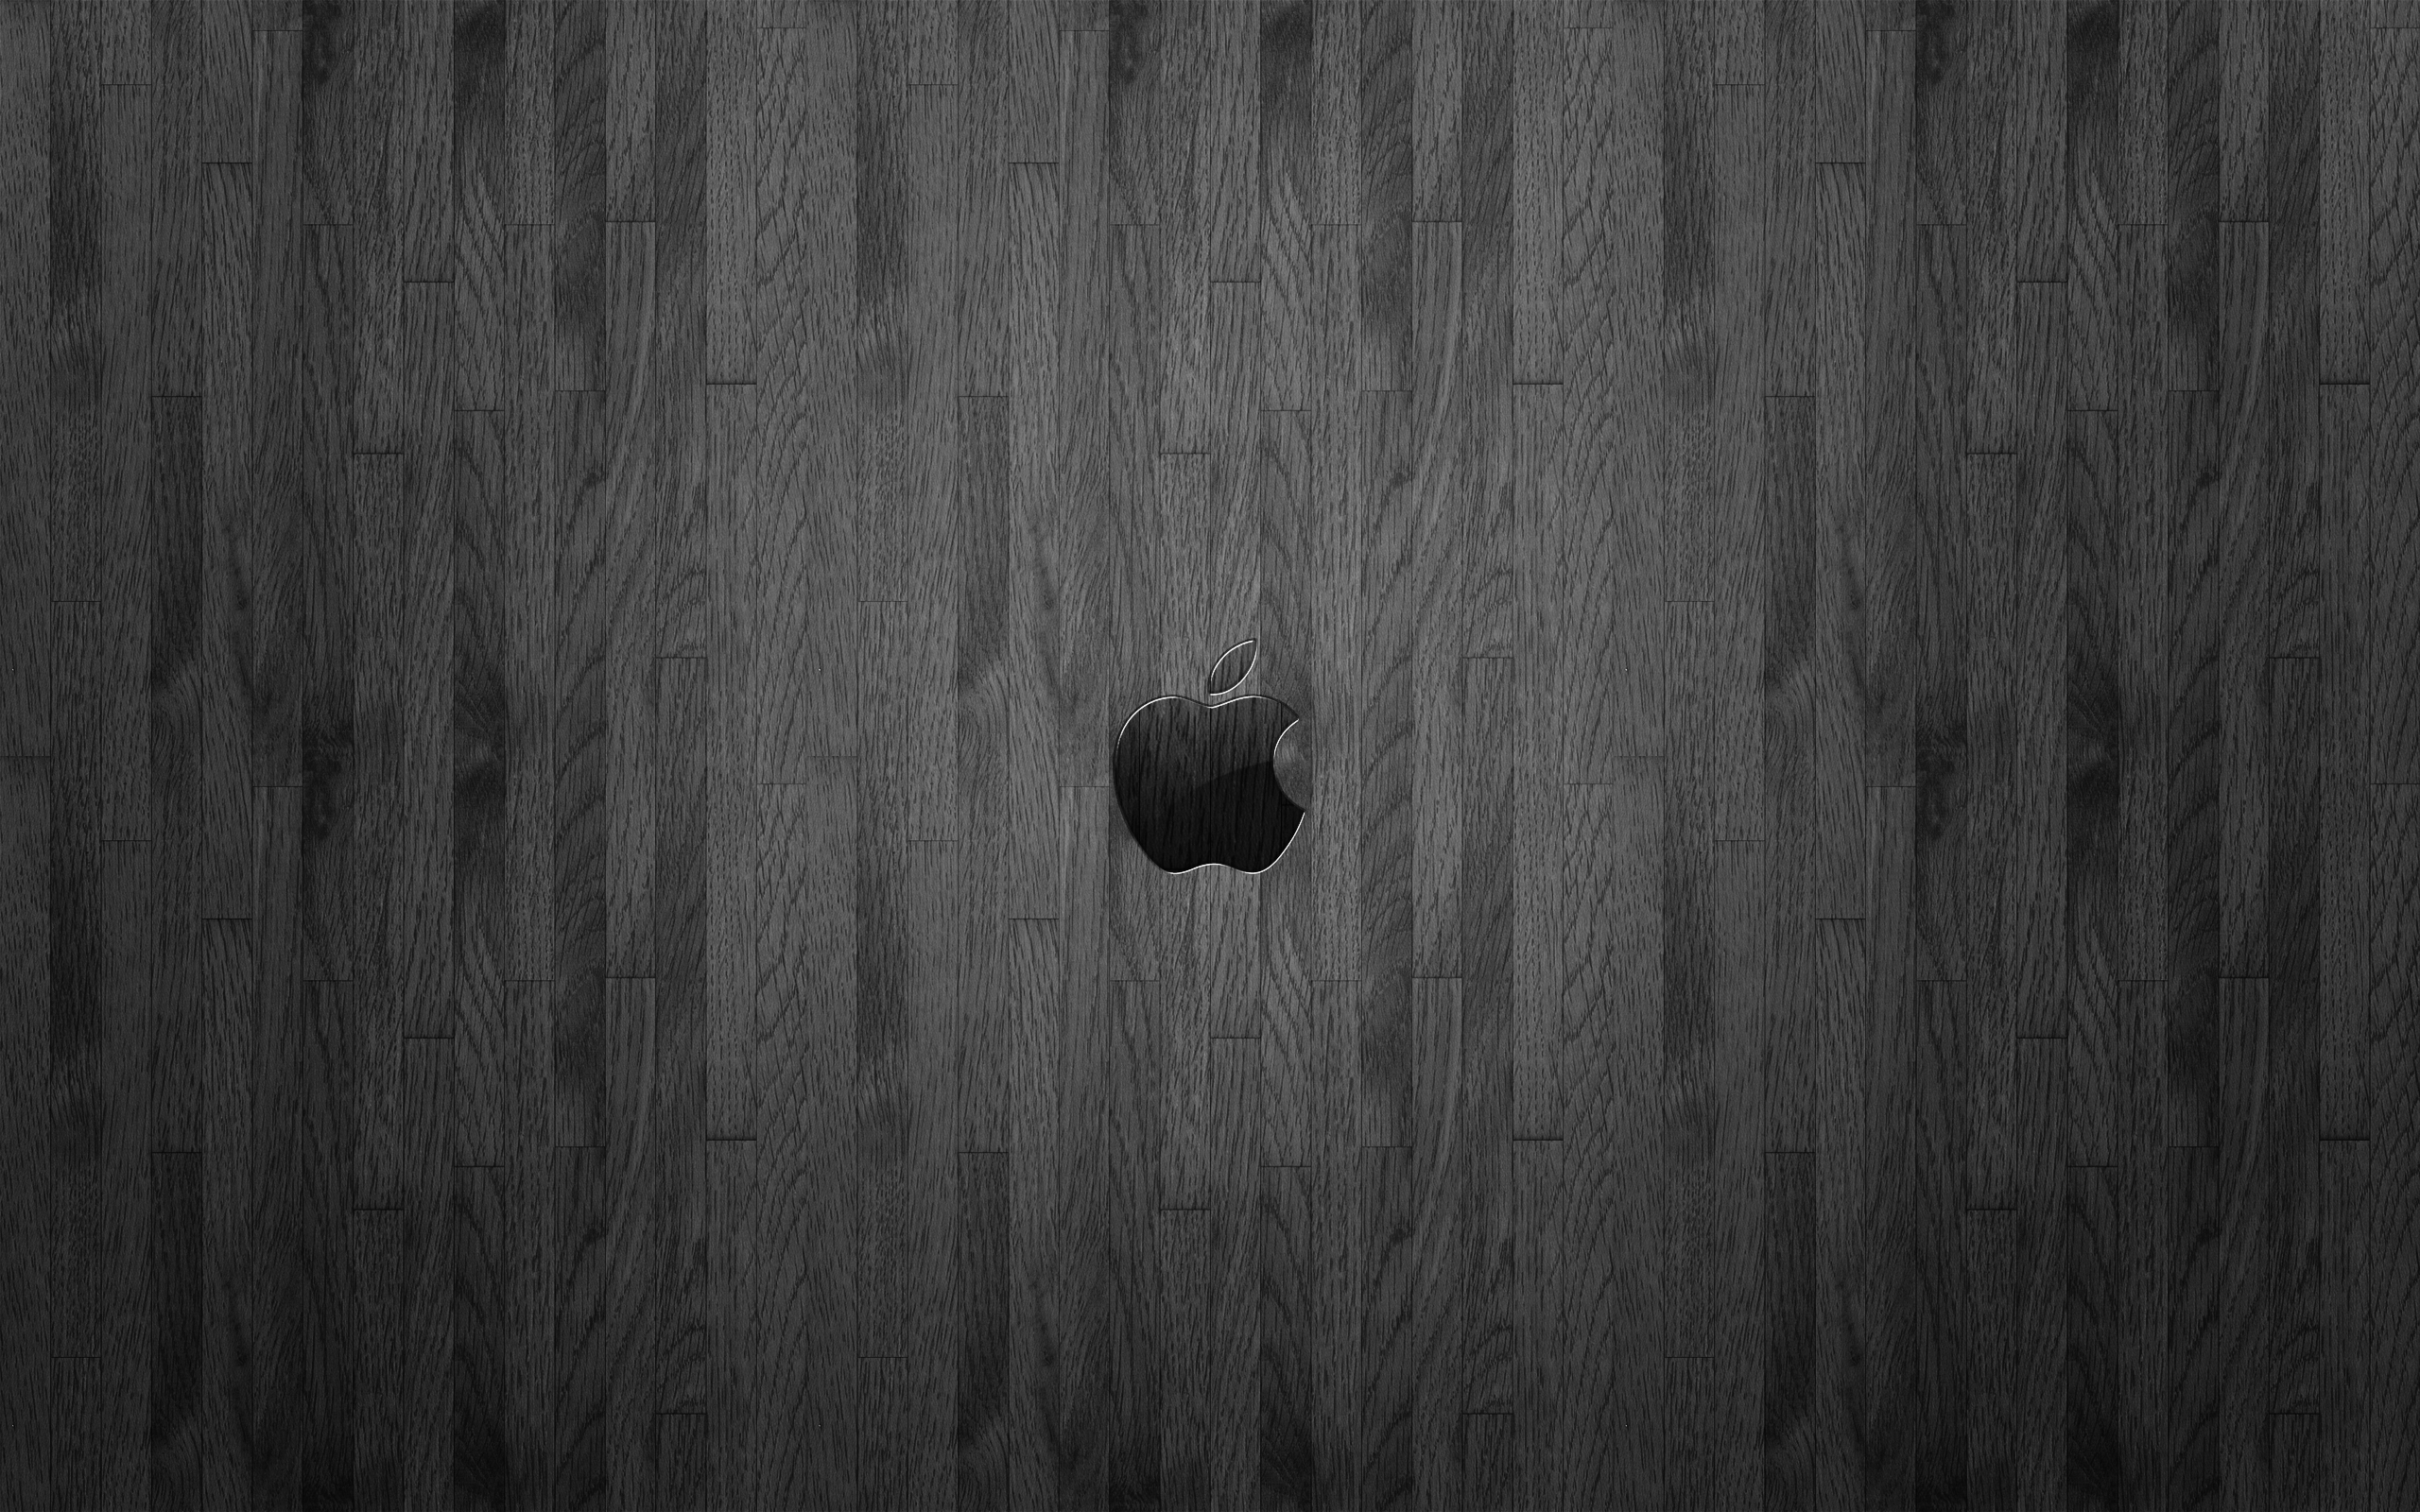 wood wallpaper apple dark